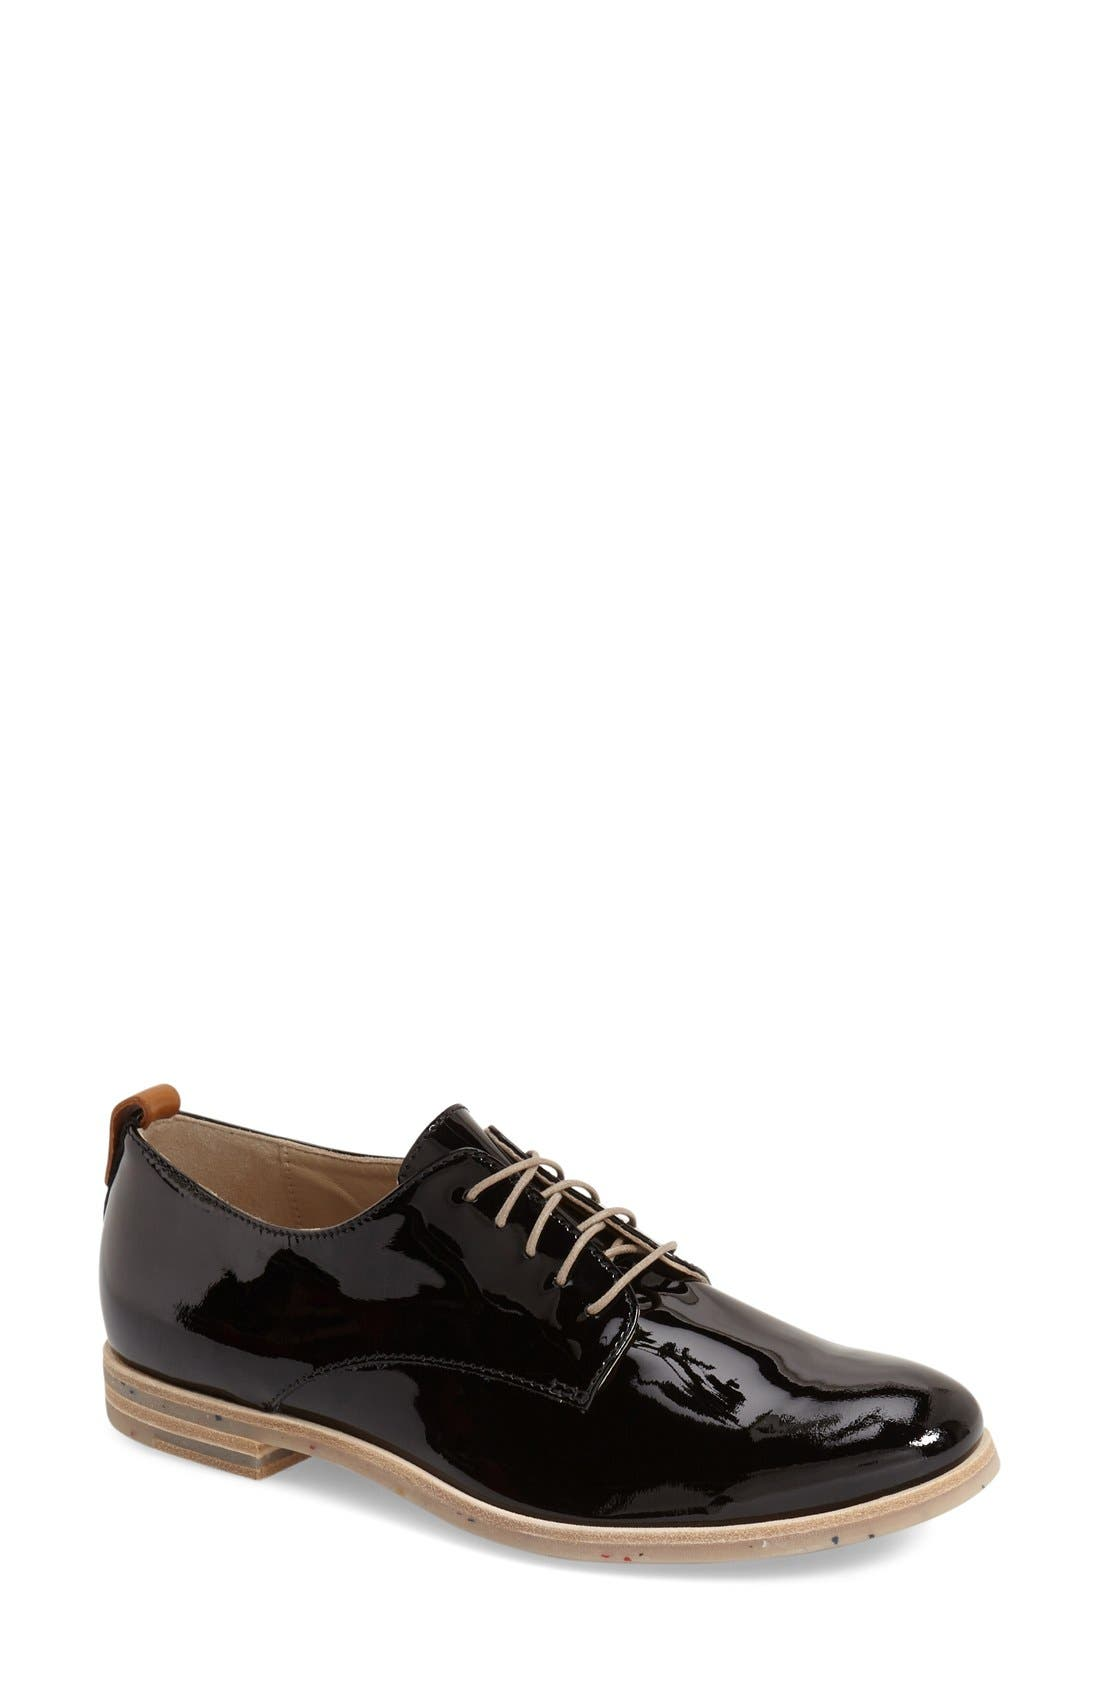 Alternate Image 1 Selected - AGL Double Sole Oxford (Women)